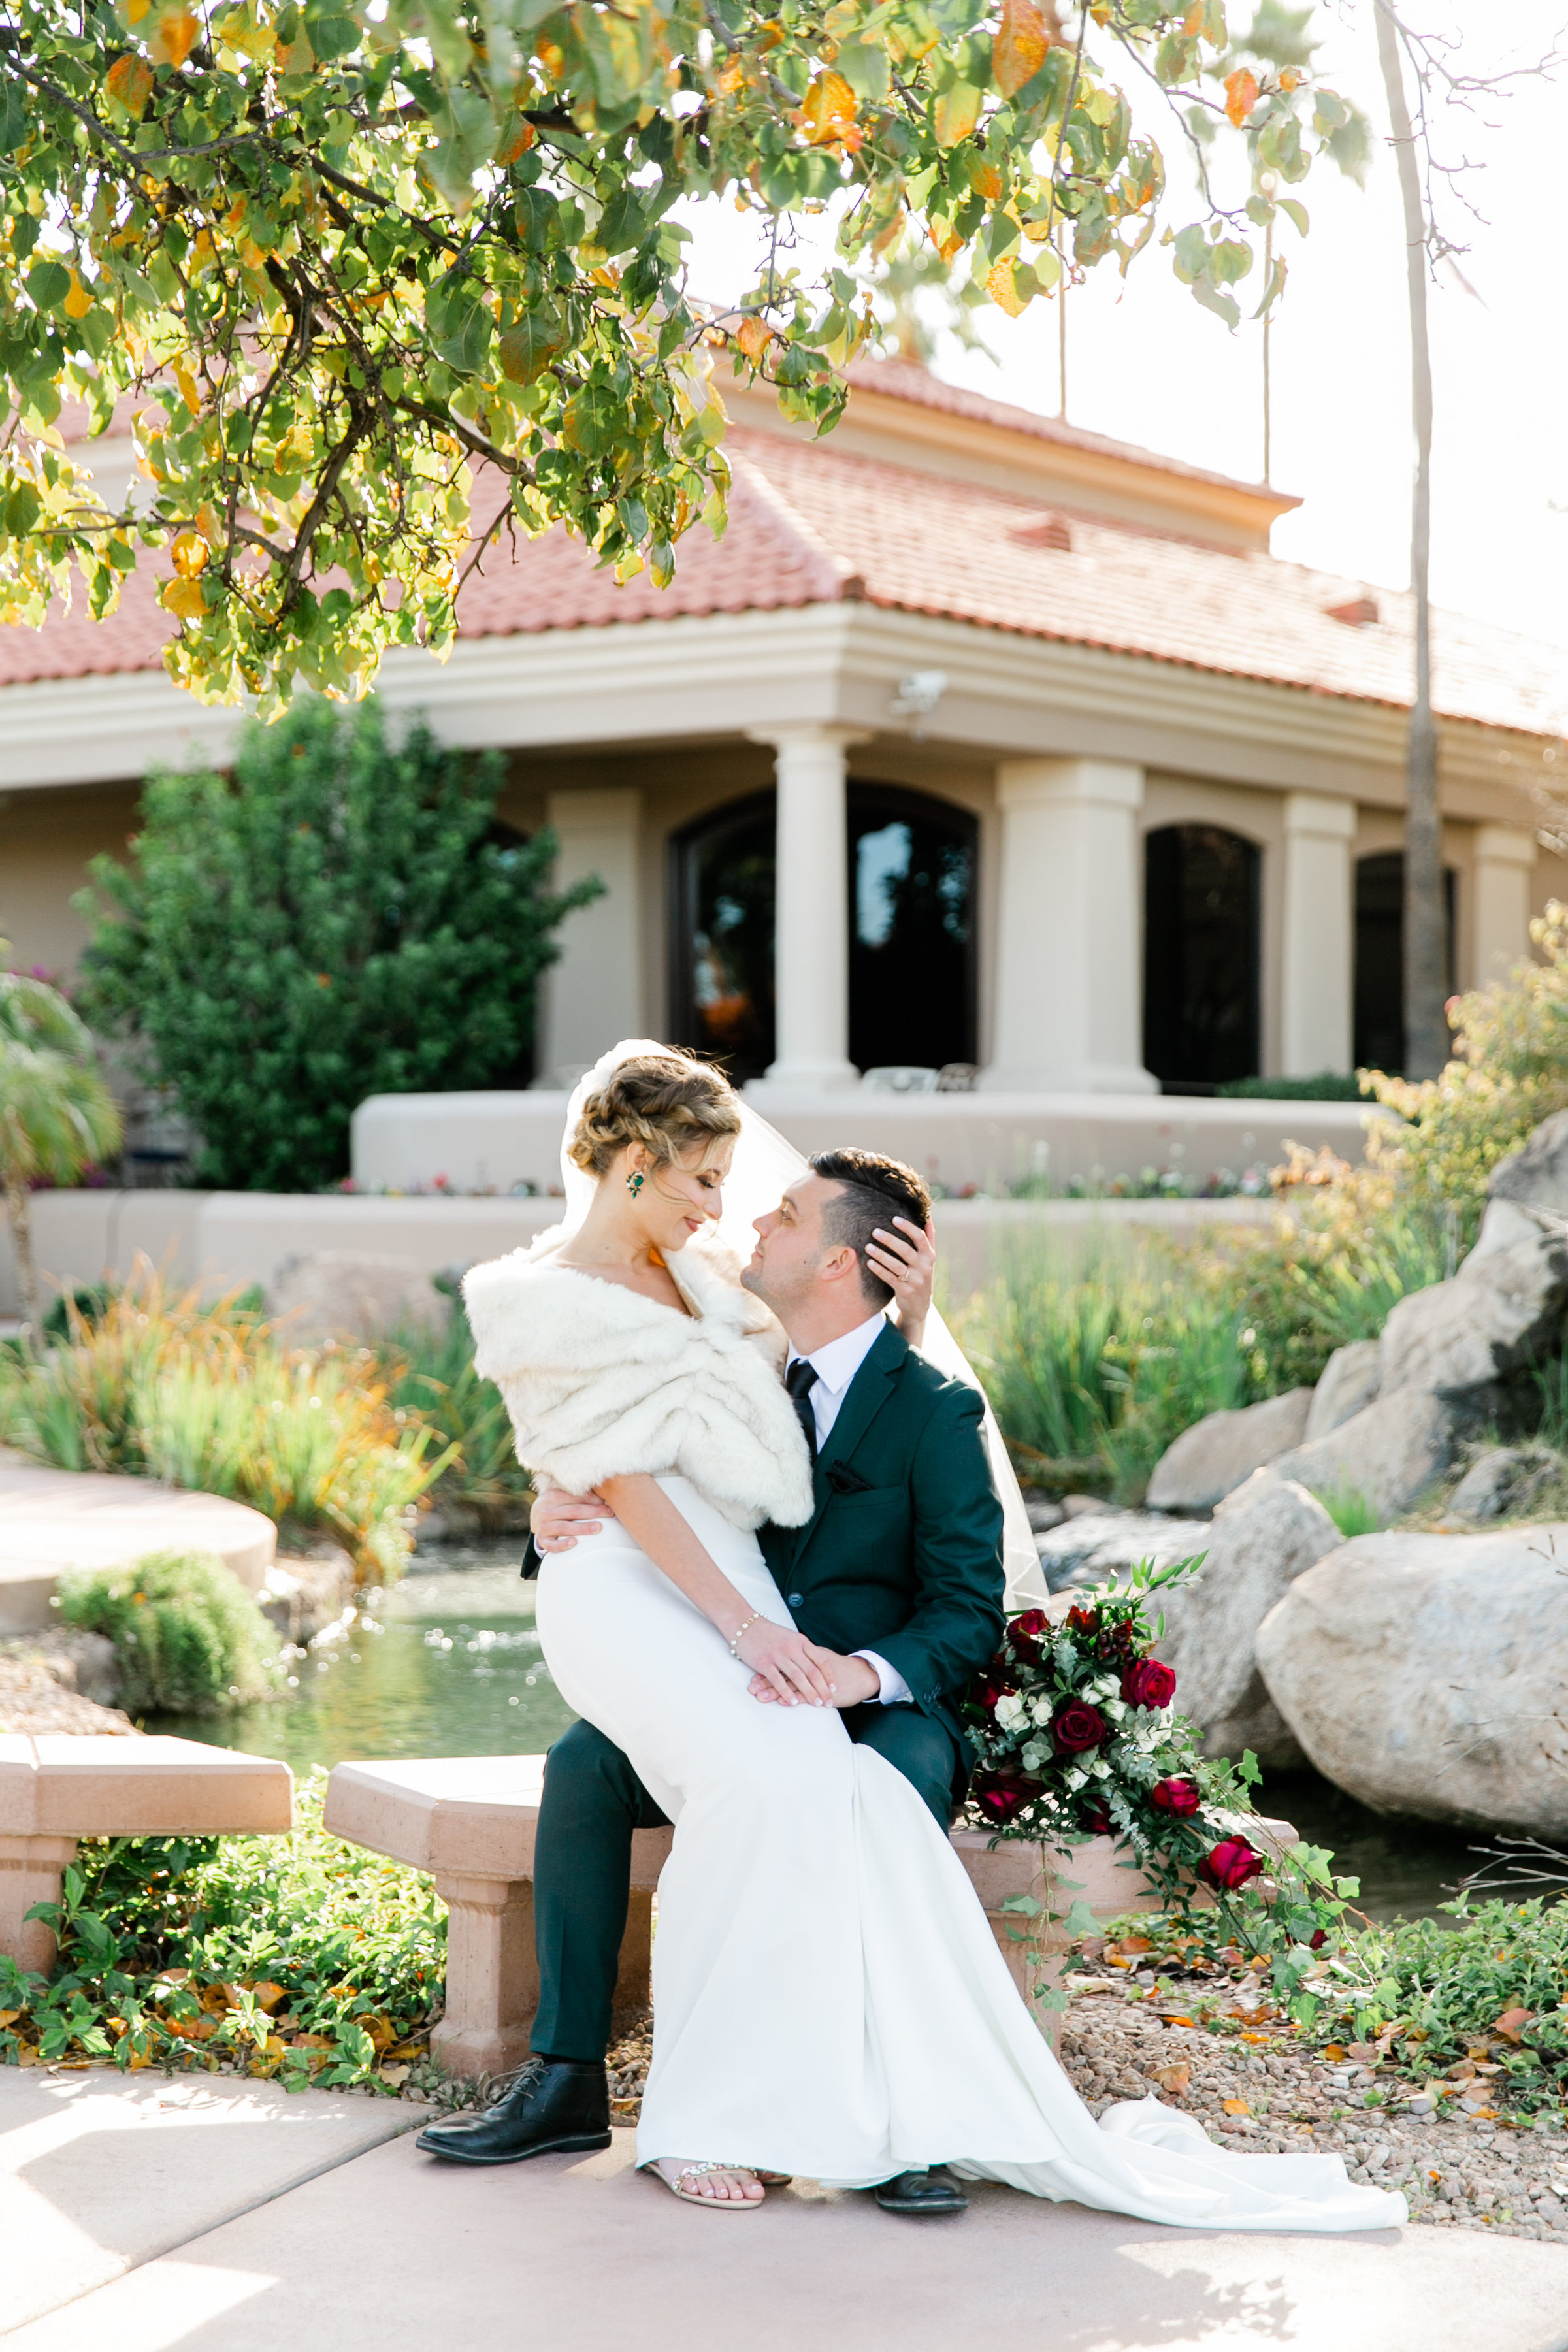 Karlie Colleen Photography - Gilbert Arizona Wedding - Val Vista Lakes - Brynne & Josh-453